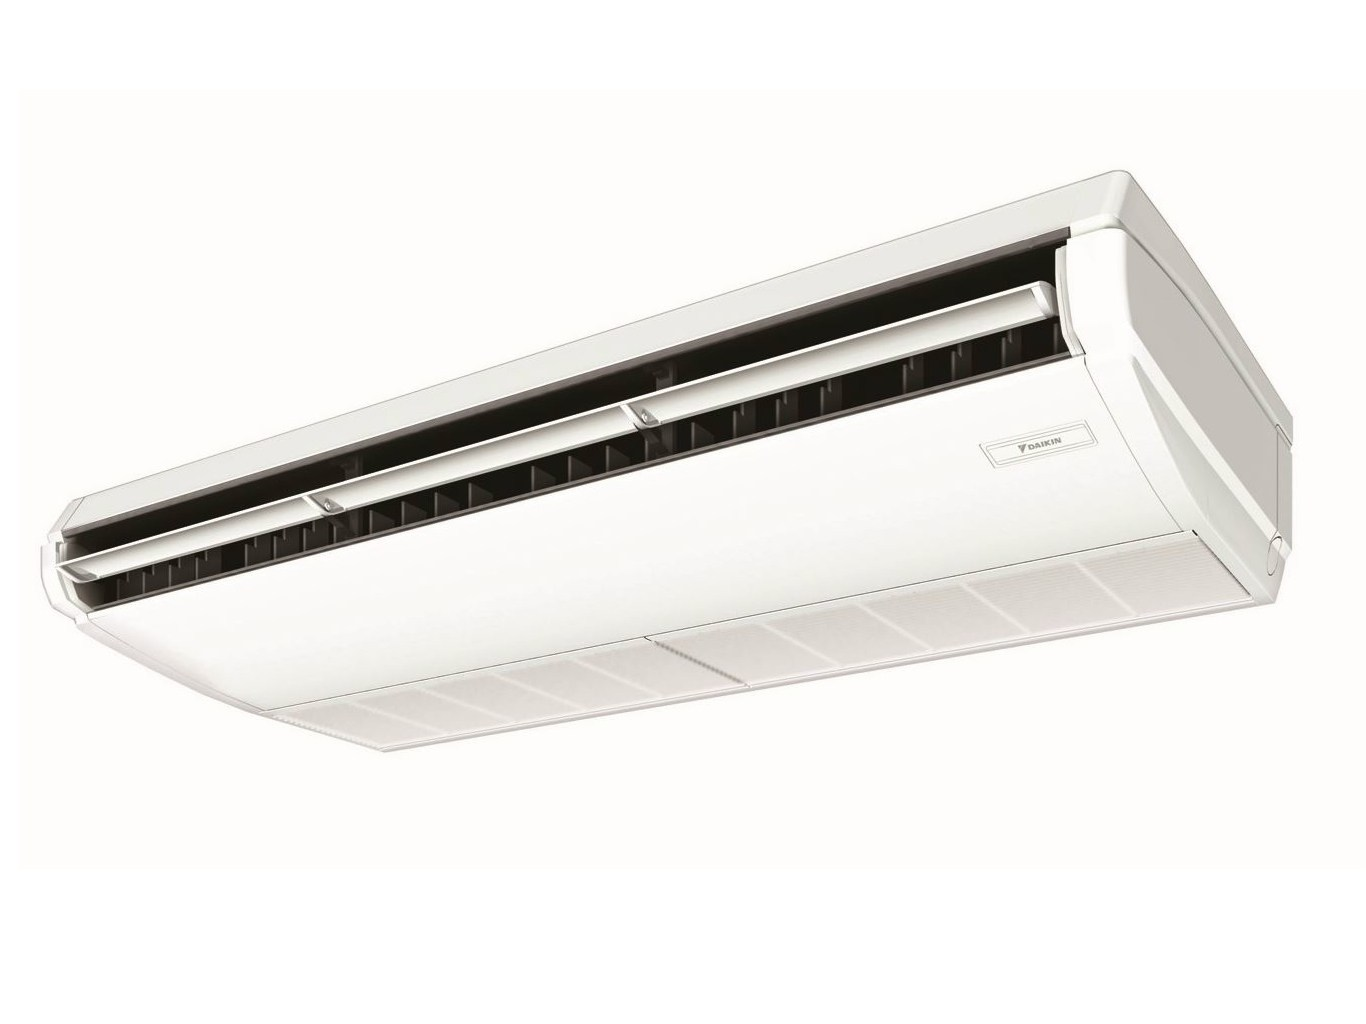 daikin 4 ton fl50exv1 ceiling type air conditioner - price in